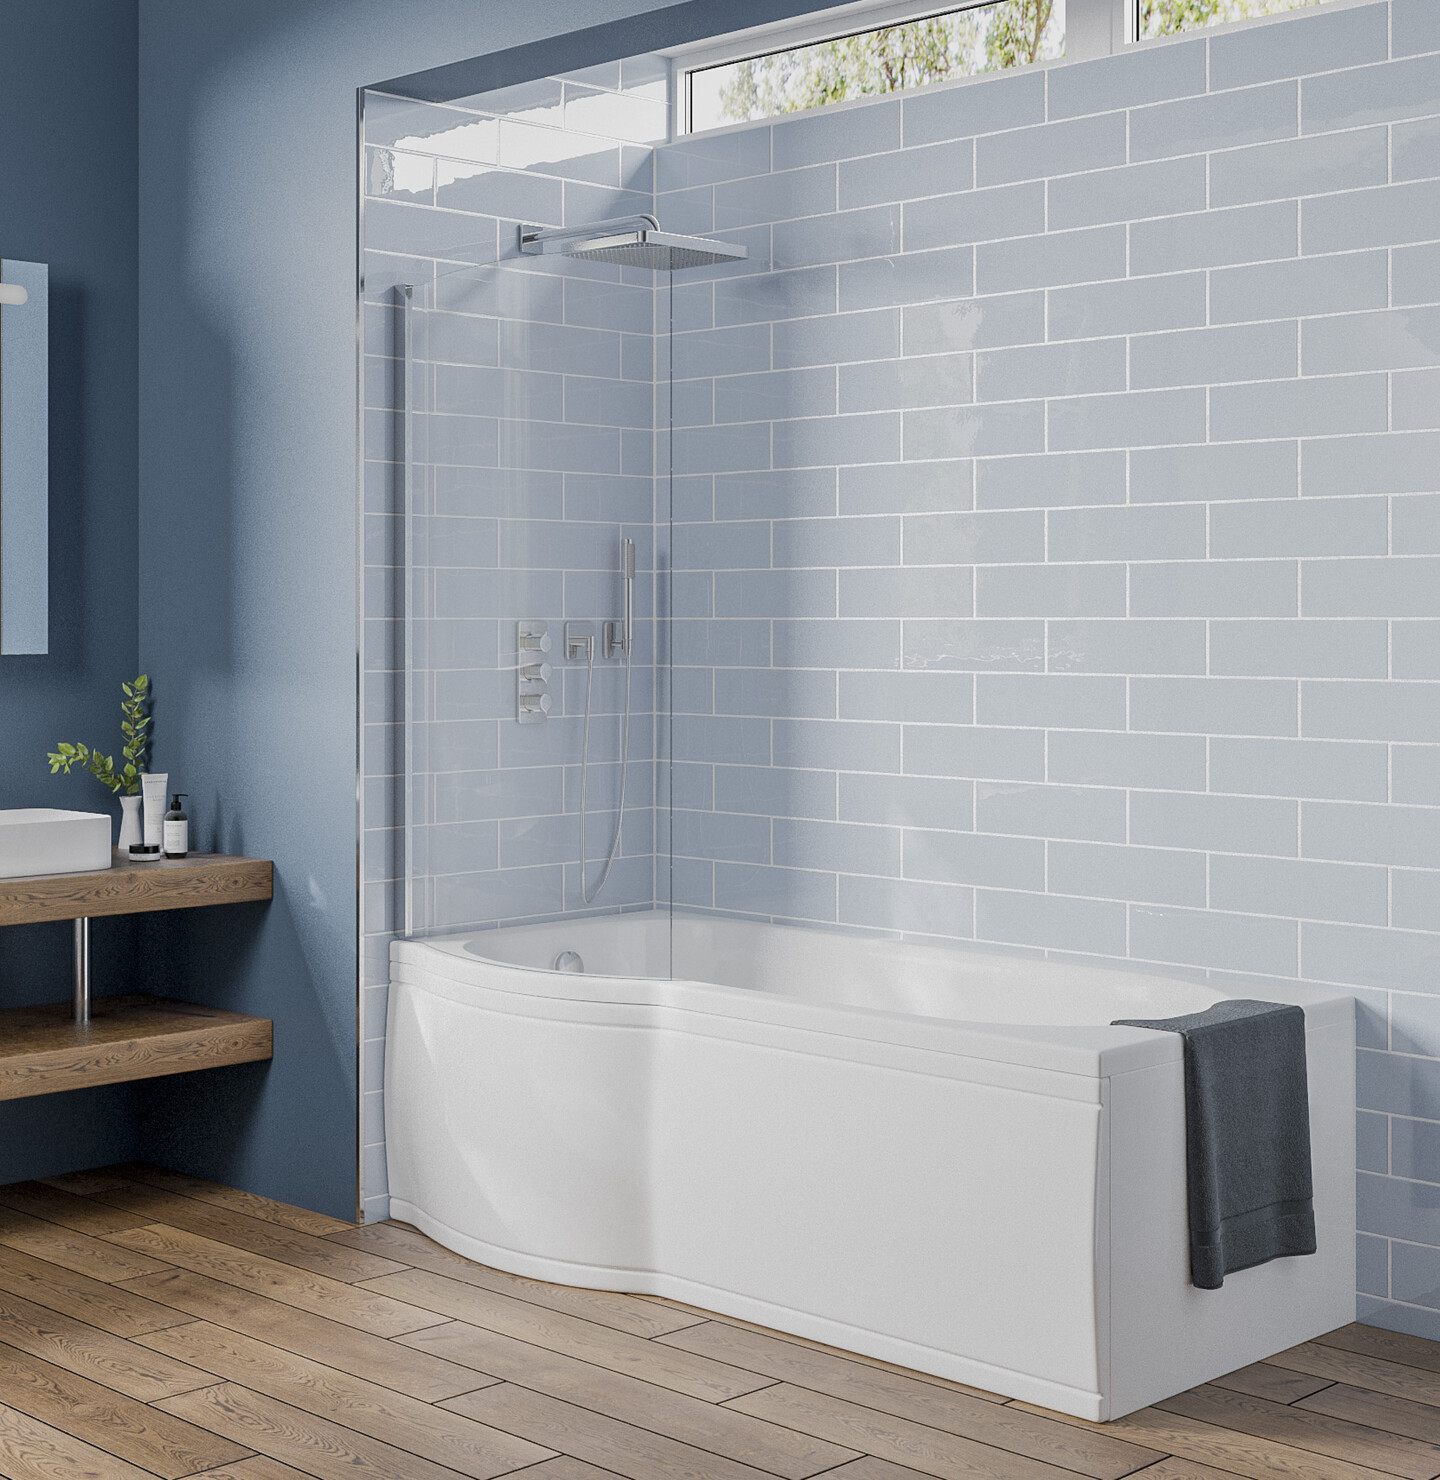 Photo of a bathroom with a bath that uses 'Simply No Slip'